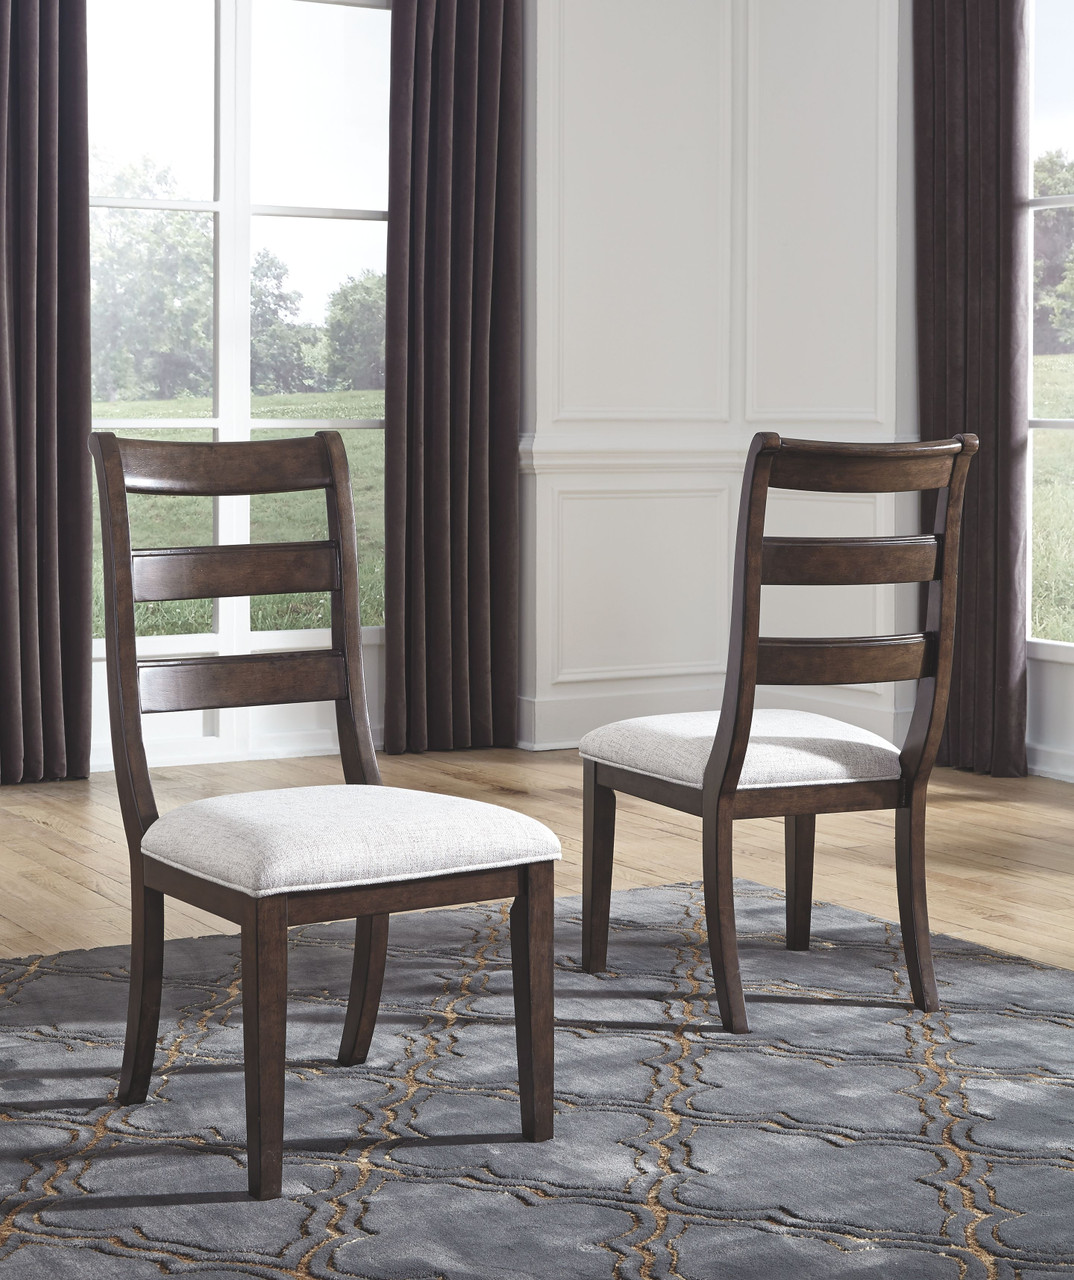 The Adinton Reddish Brown Dining Upholstered Side Chair 2 Cn Available At Ritz Furniture Planet Serving Mississauga On